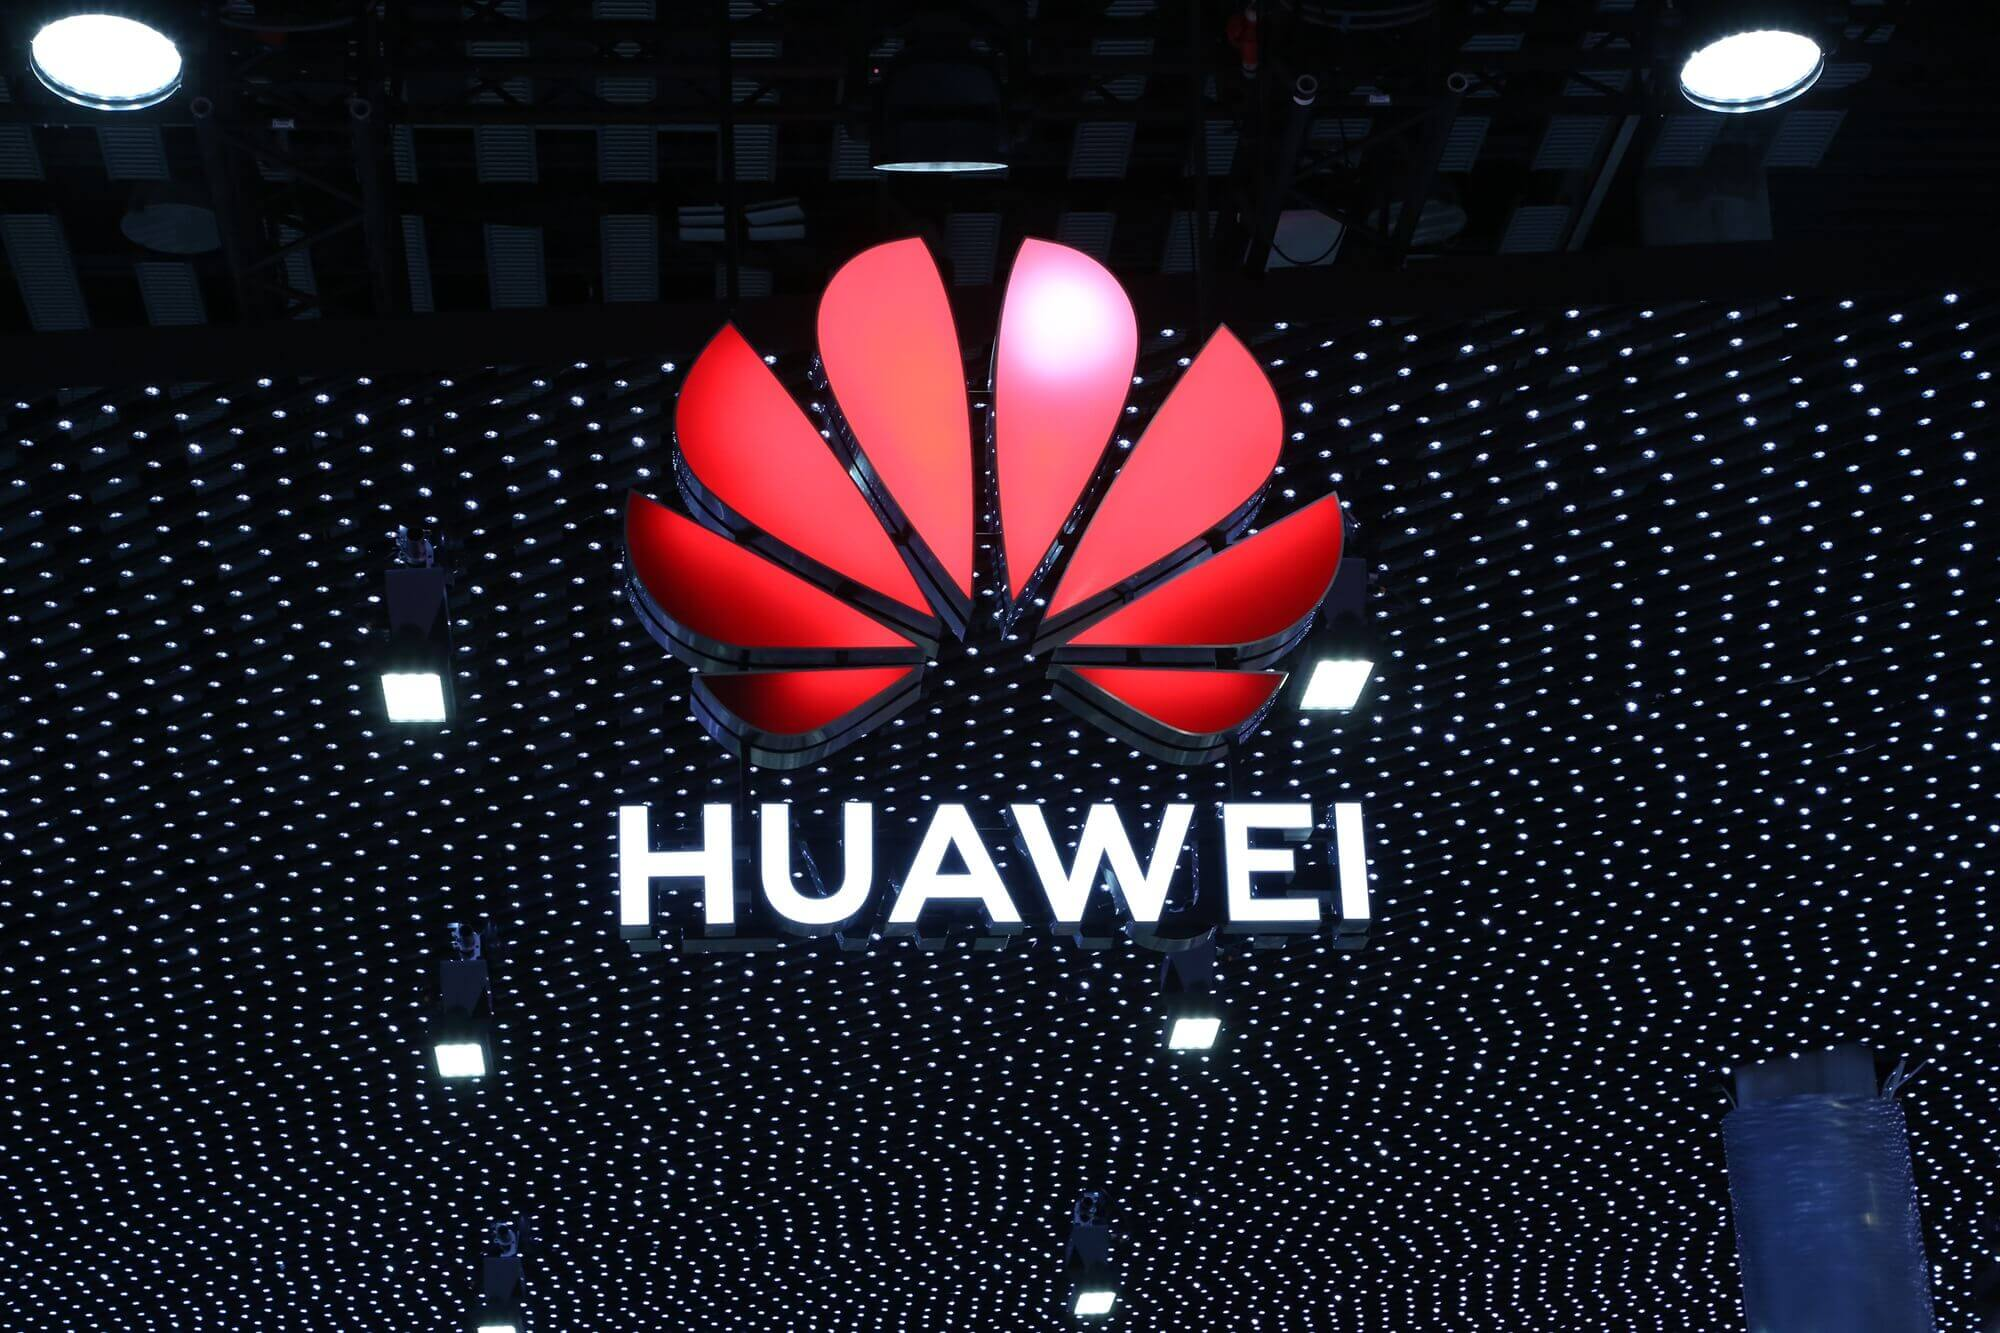 Huawei has spent billions on a two-year stockpile of American chips